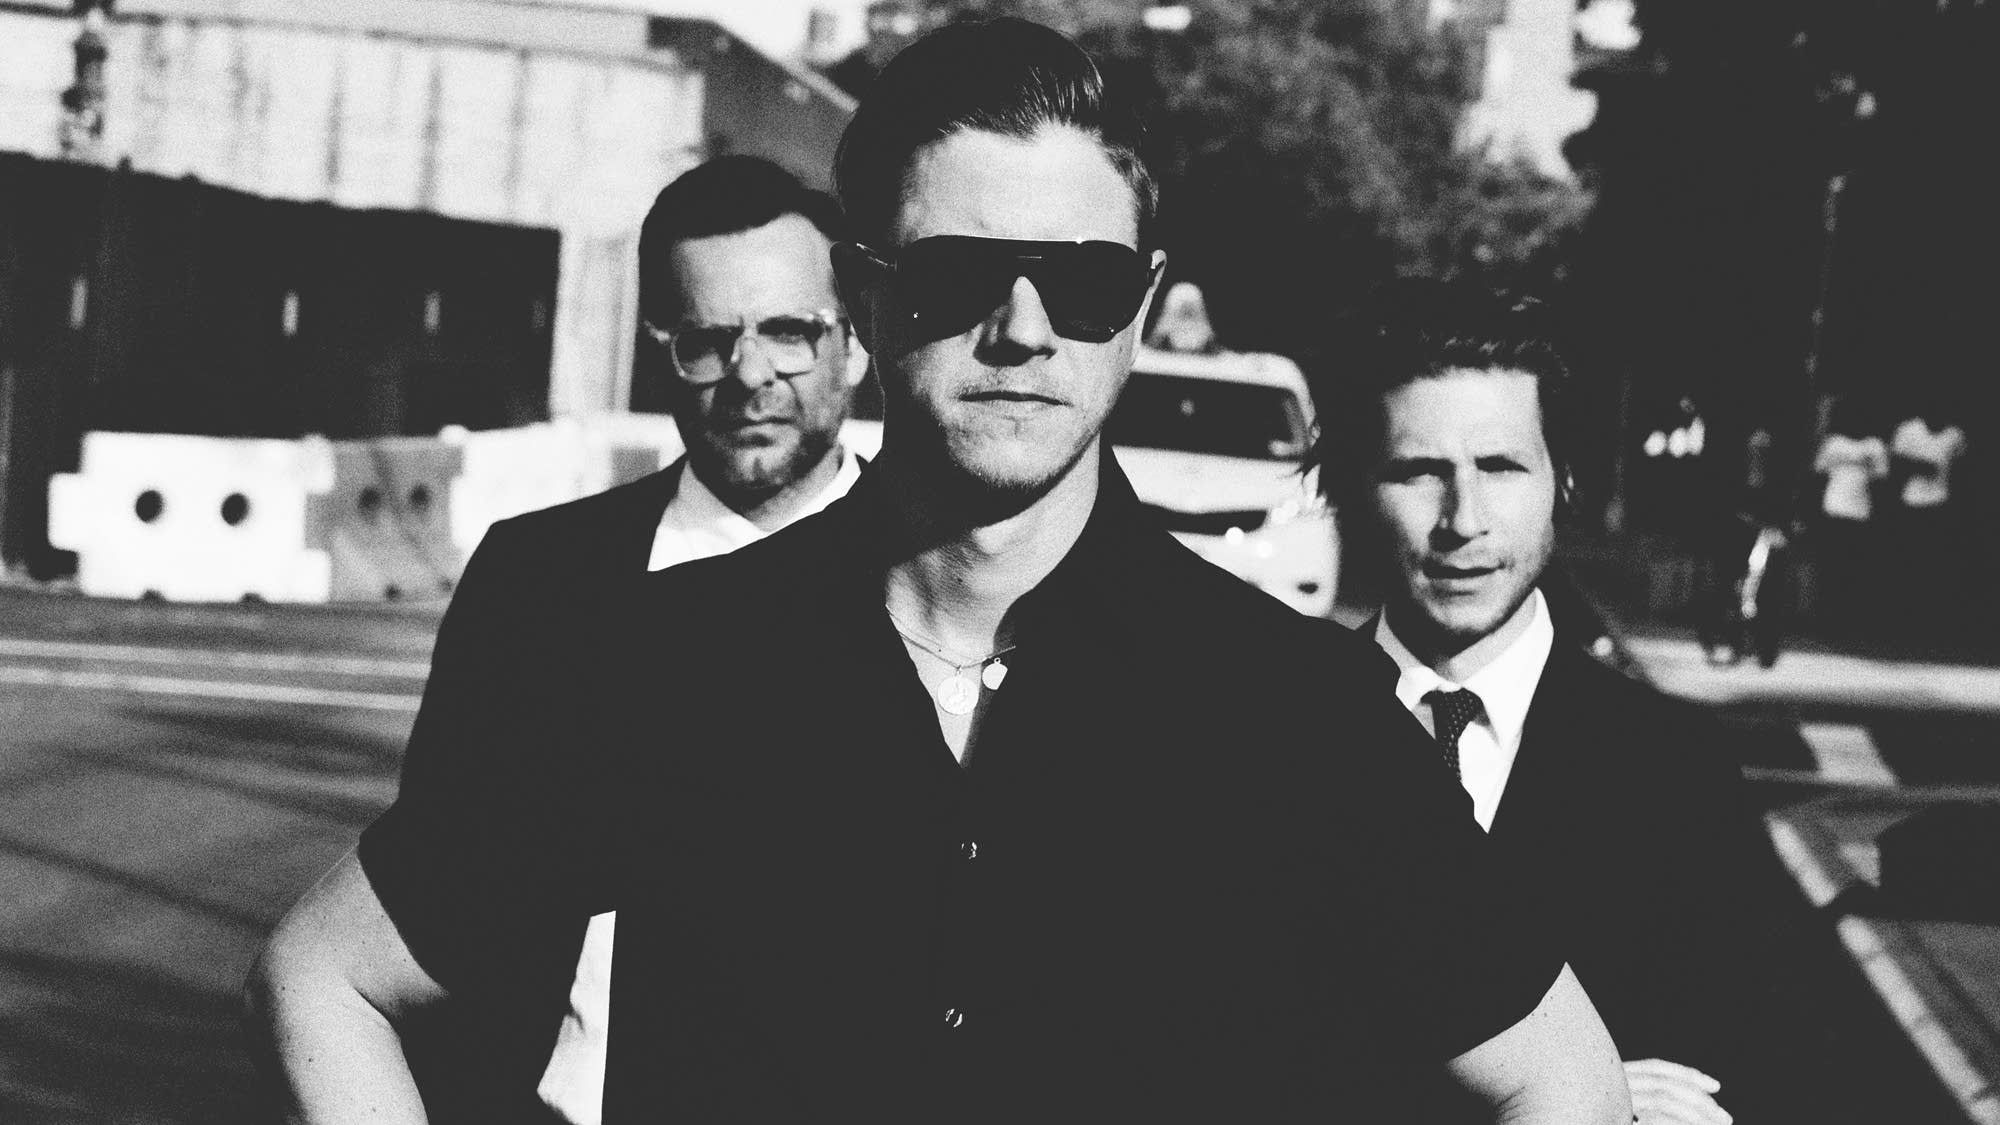 Interpol's new album, El Pintor, comes out on Sept